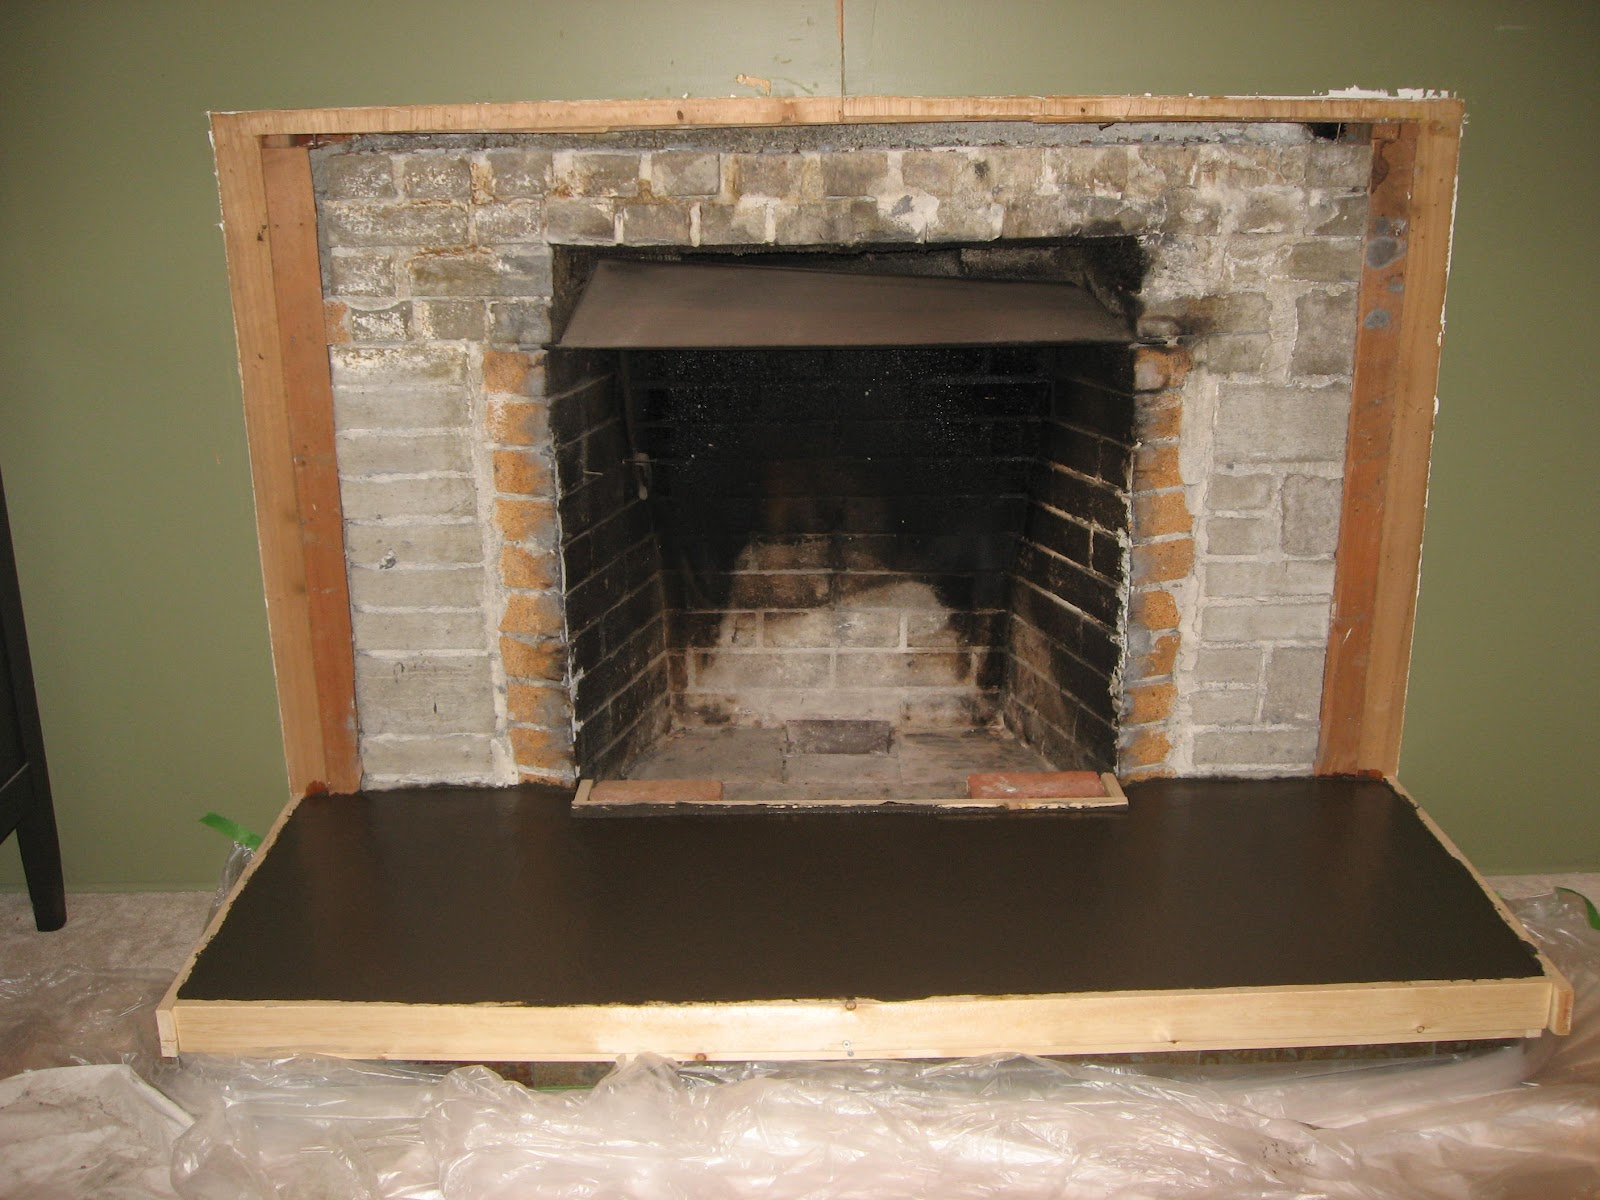 Heather's home improvements: Livingroom fireplace remodel